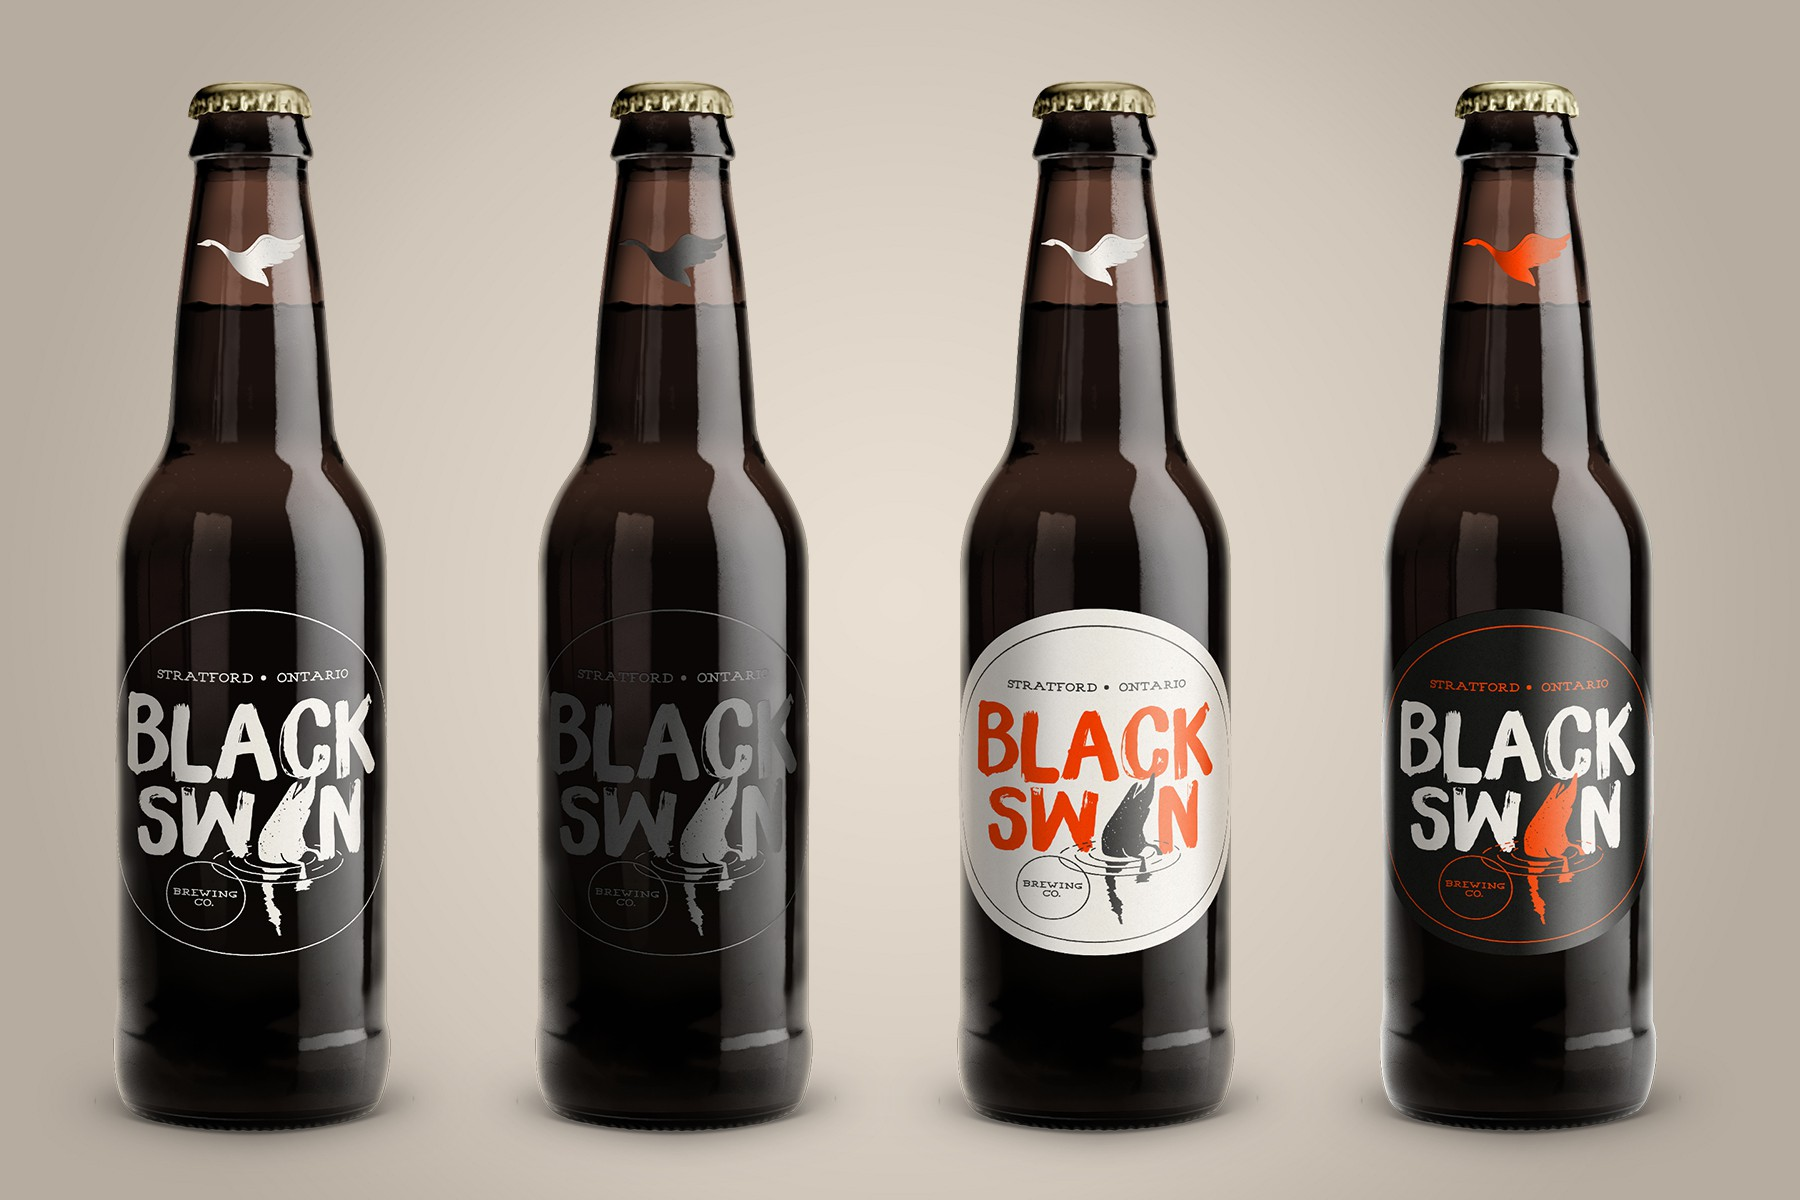 Black Swan Brewing Company - looking for a fun and upscale label for an arts and culture and culinary rich community